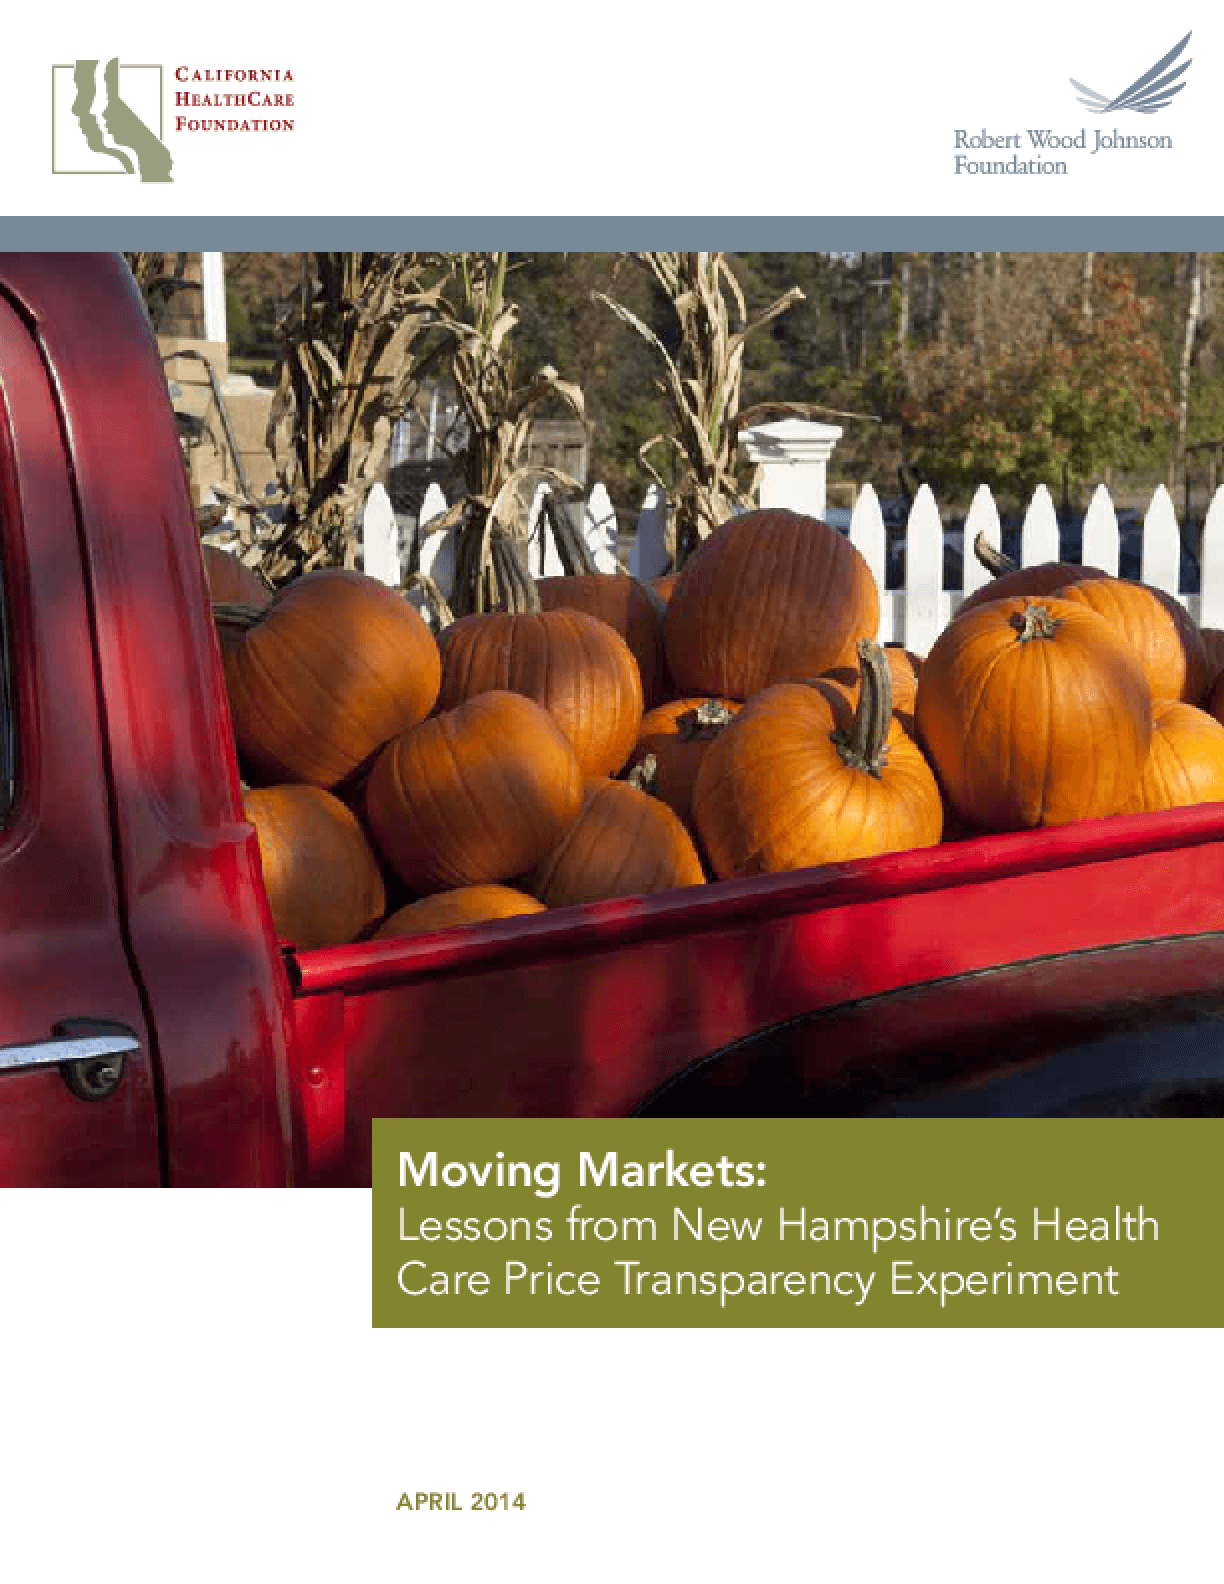 Moving Markets: Lessons from New Hampshire's Health Care Price Transparency Experiment